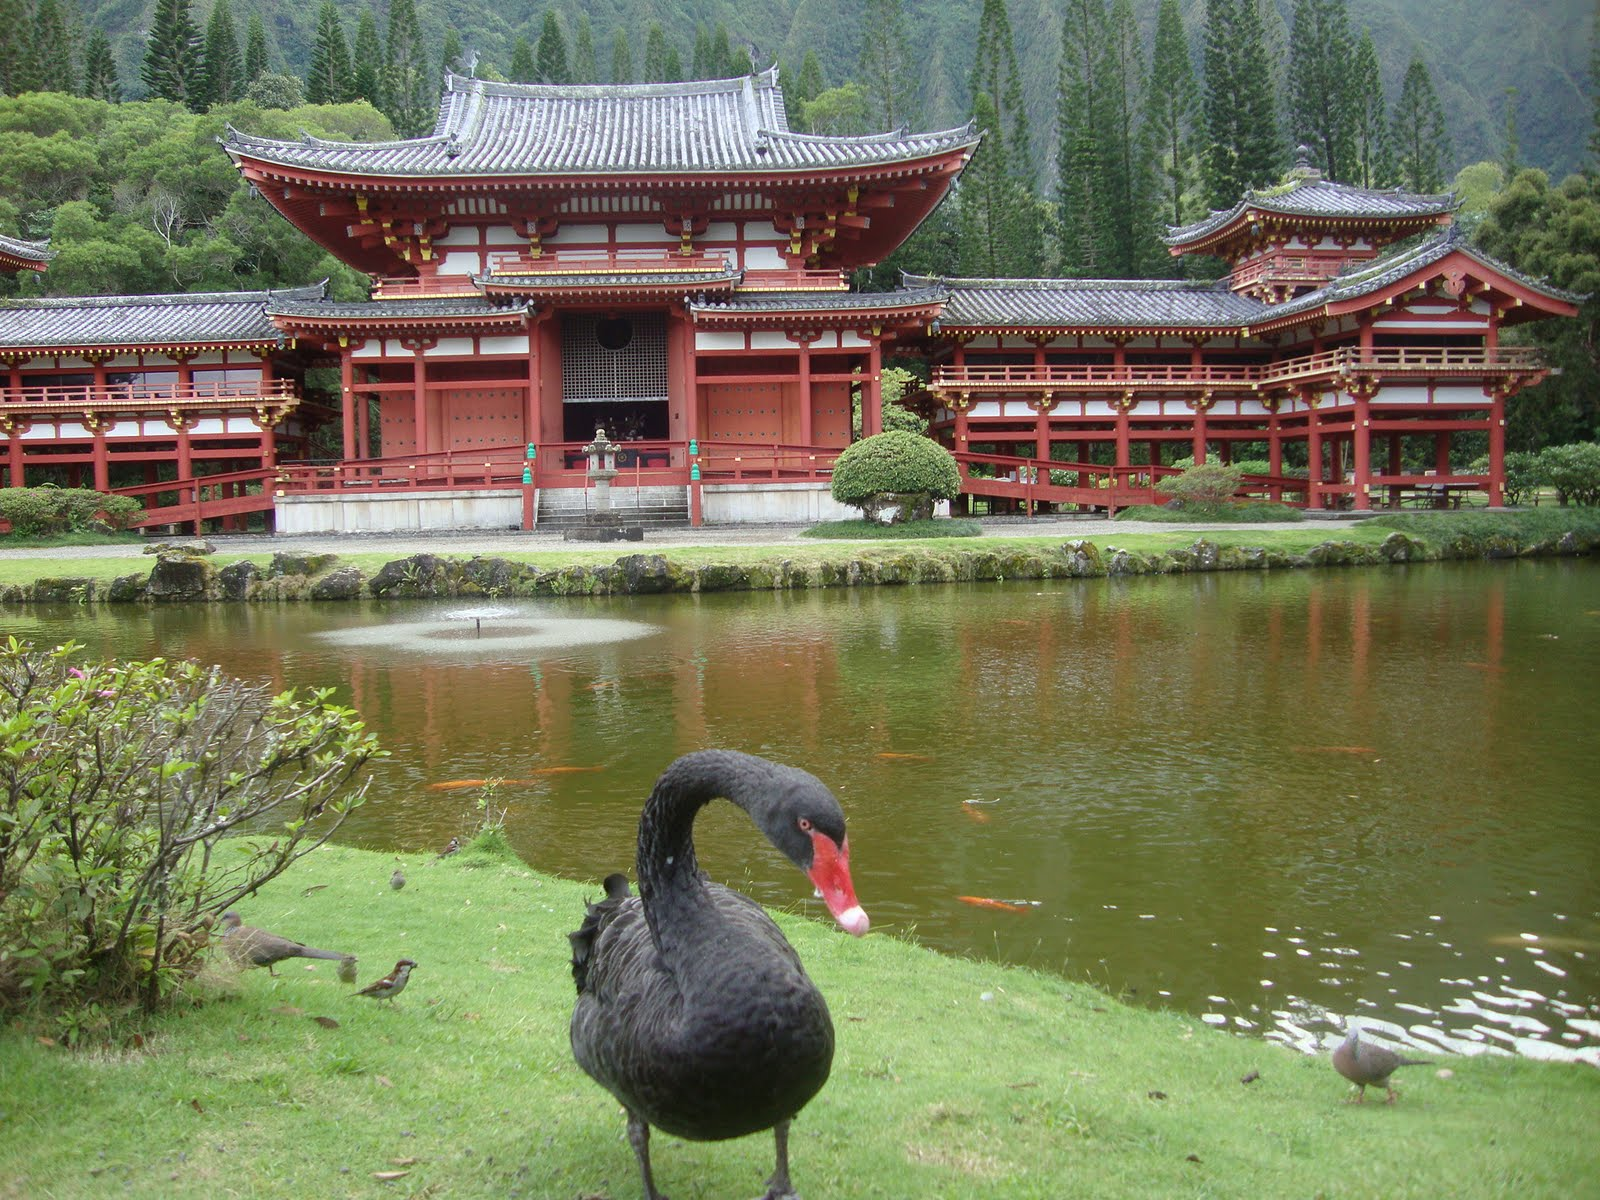 swan valley buddhist singles Select your location to enter site news and information from ups, track your shipment, create a new shipment or schedule a pickup, caluclate time and costs or find a.